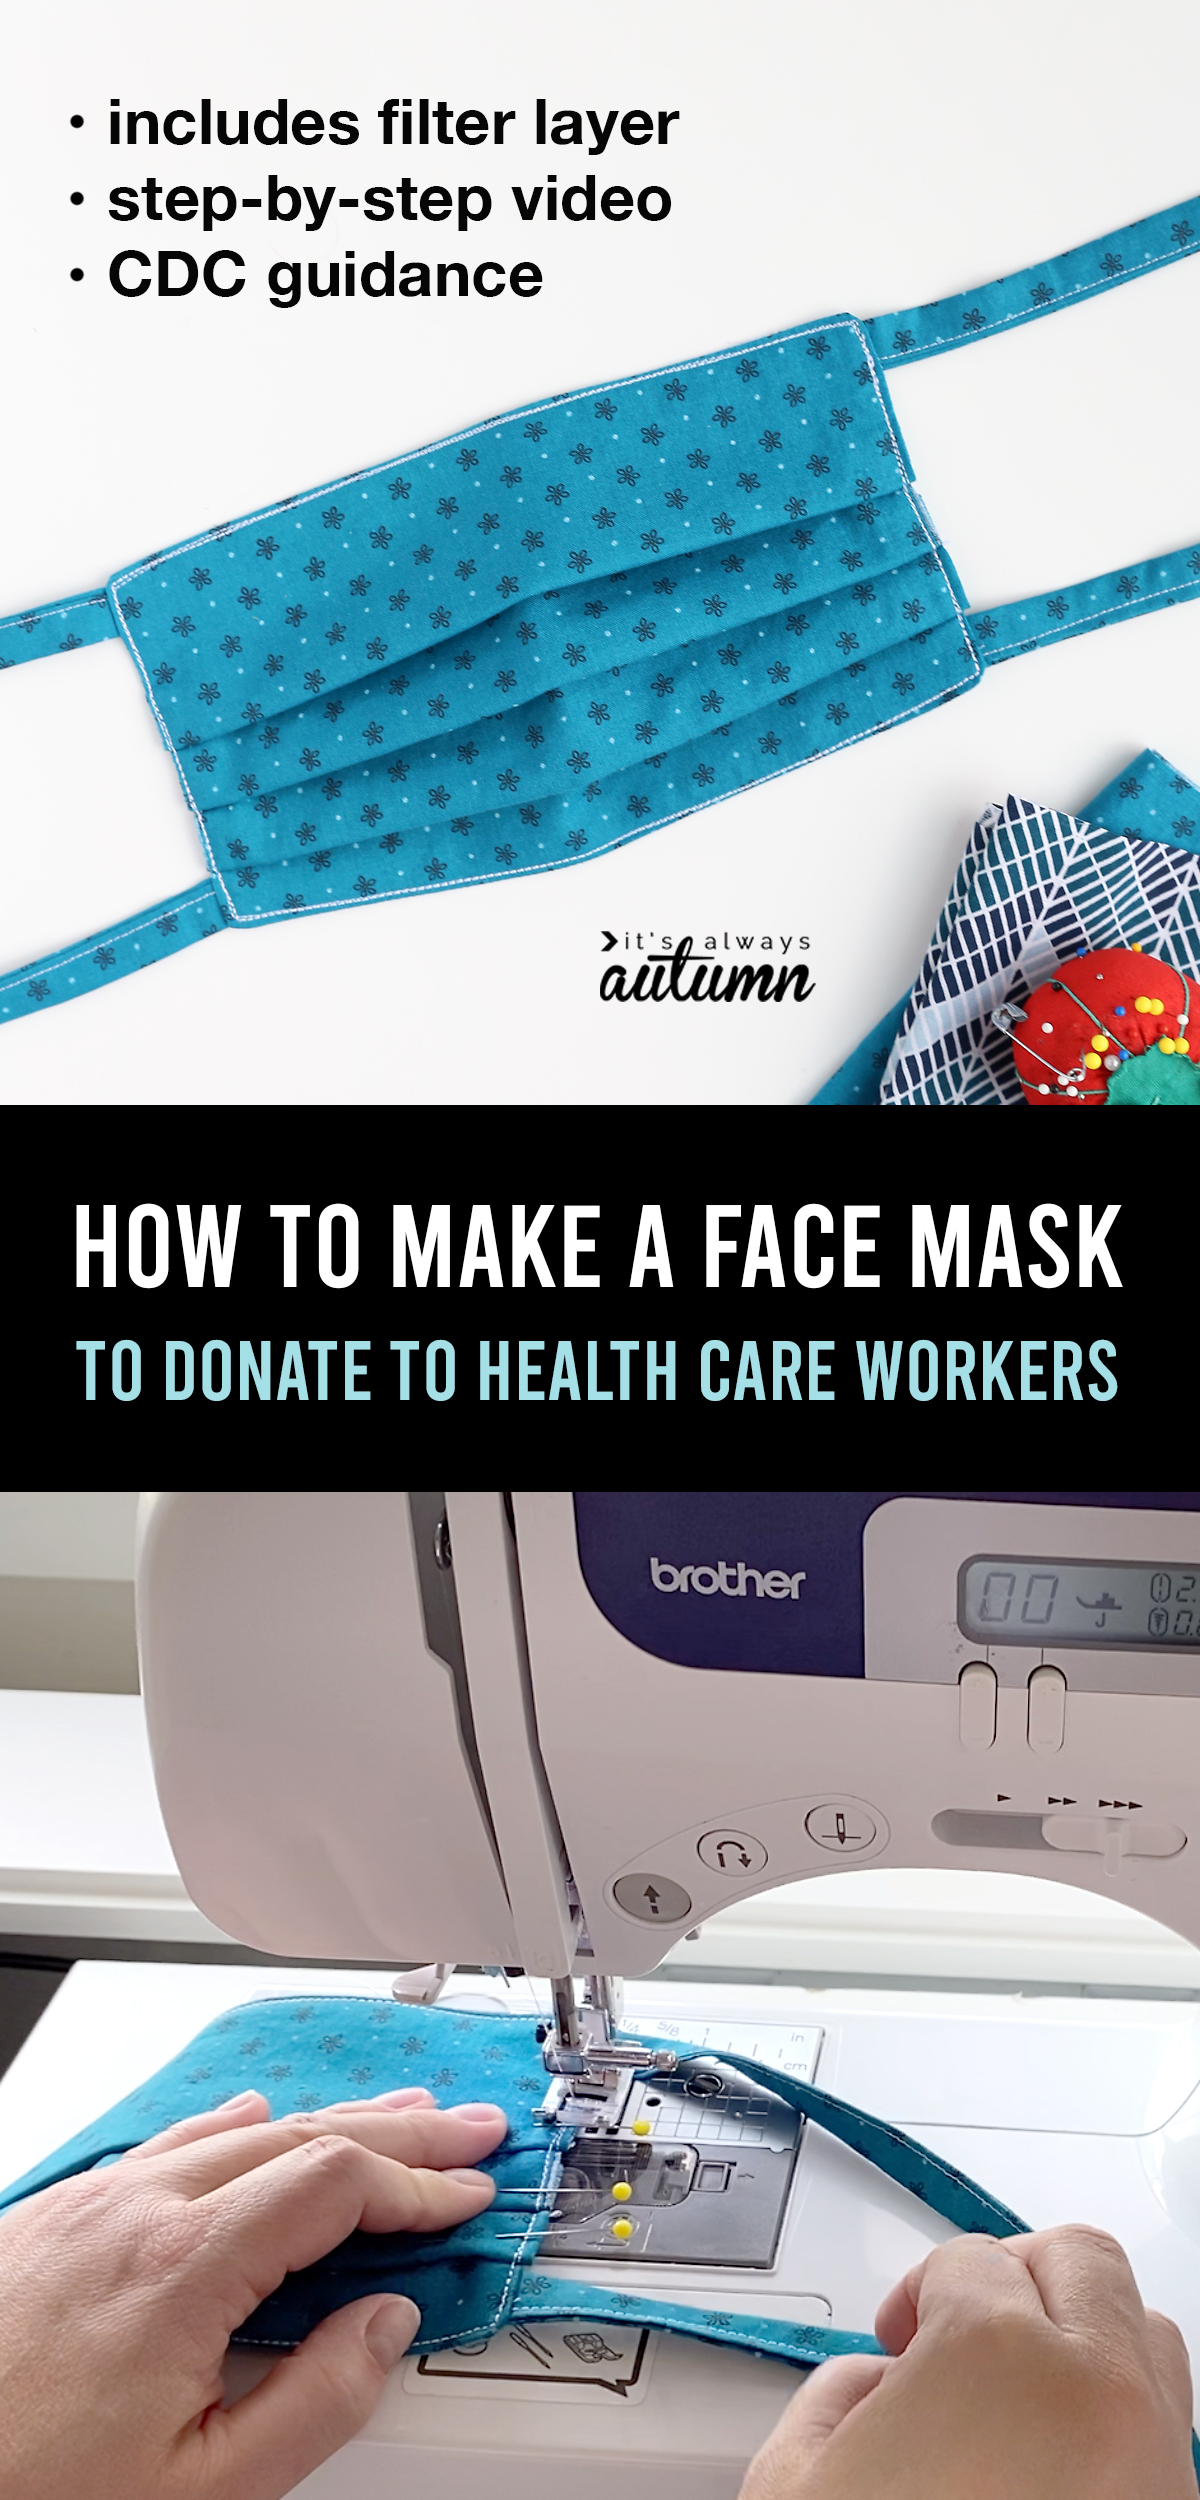 Step by step video instructions for how to make a face mask so you can help with the shortage of protective equipment for health care workers